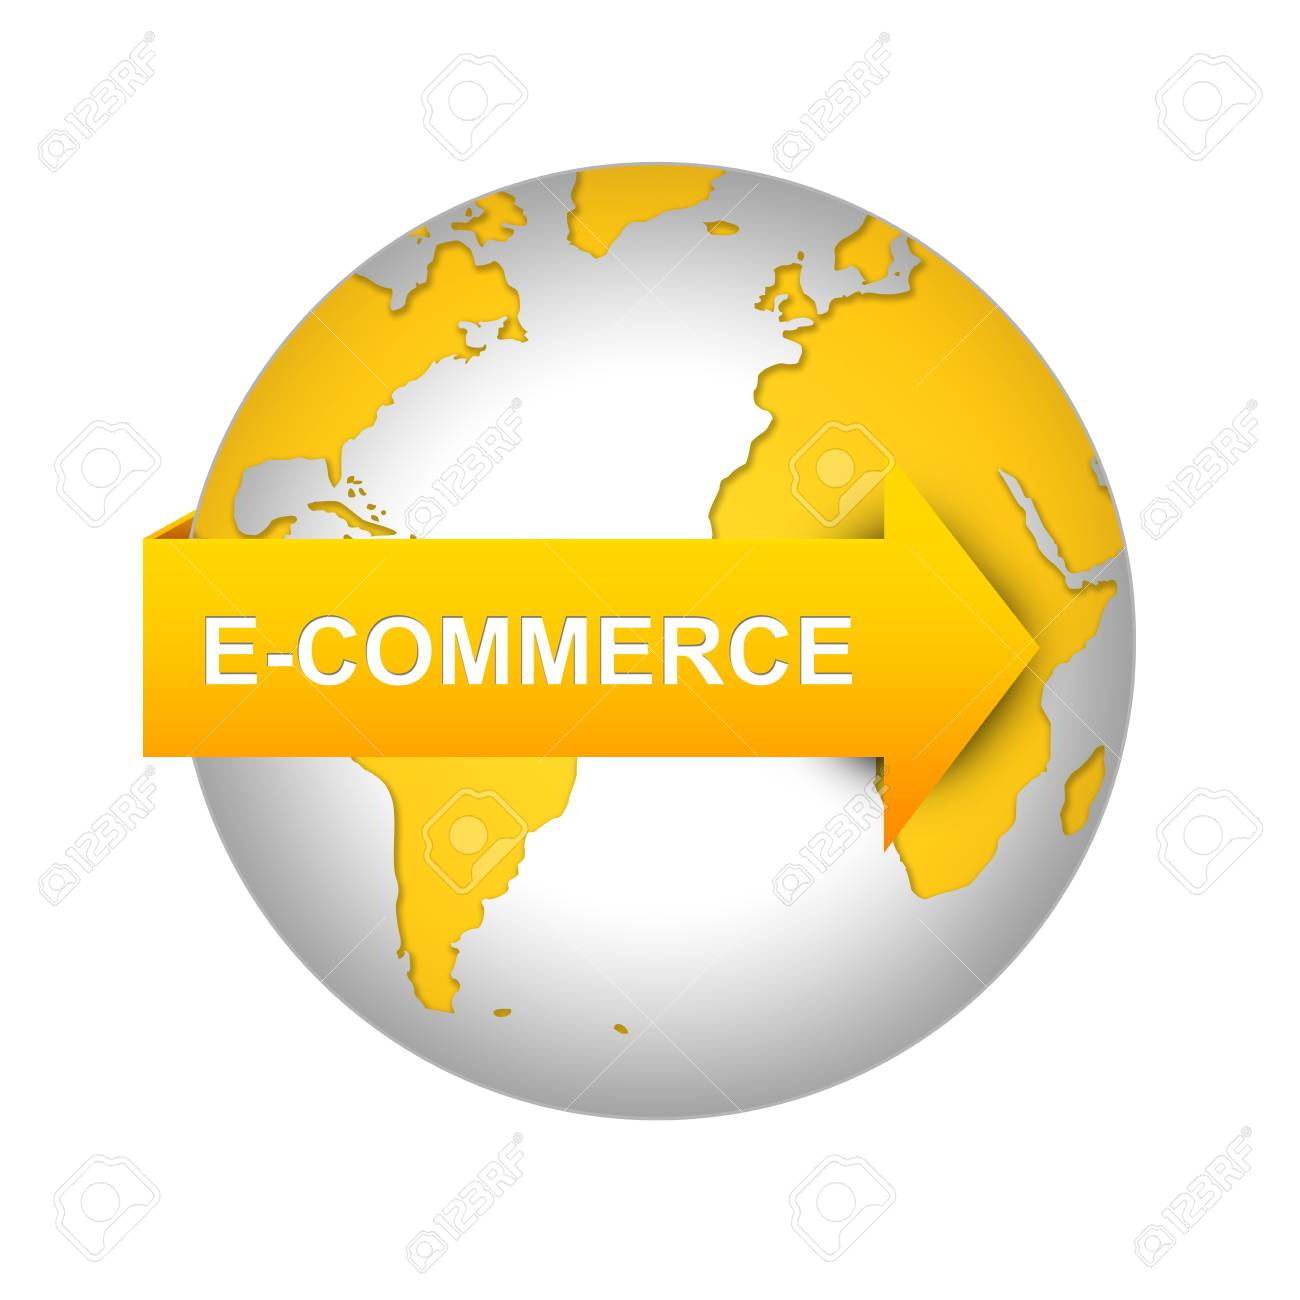 E-Commerce and Online Shopping Concept, Orange E-Commerce Arrow On The World Isolated on White Background Stock Photo - 17608833